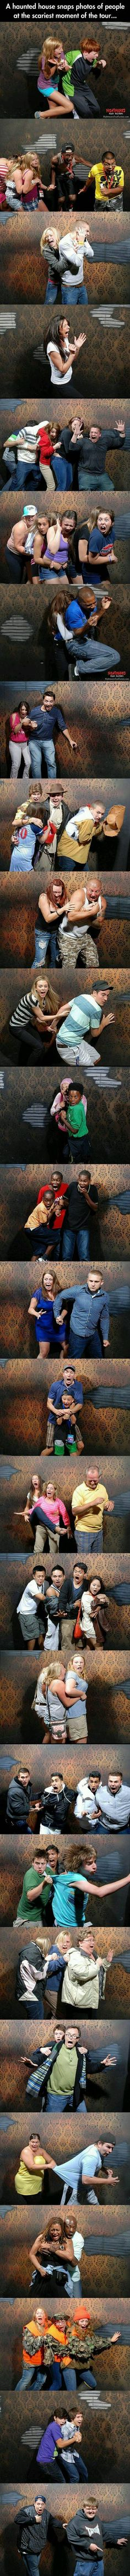 The Nightmares Fear Factory in Canada claims to be the scariest haunted house attraction in the world. And after seeing these pictures... they might be right.  There is a hidden camera that snaps photos right at the scariest moment of the tour. I have no idea what happens at this moment, but judging by these people's reactions... it's absolutely terrifying!!